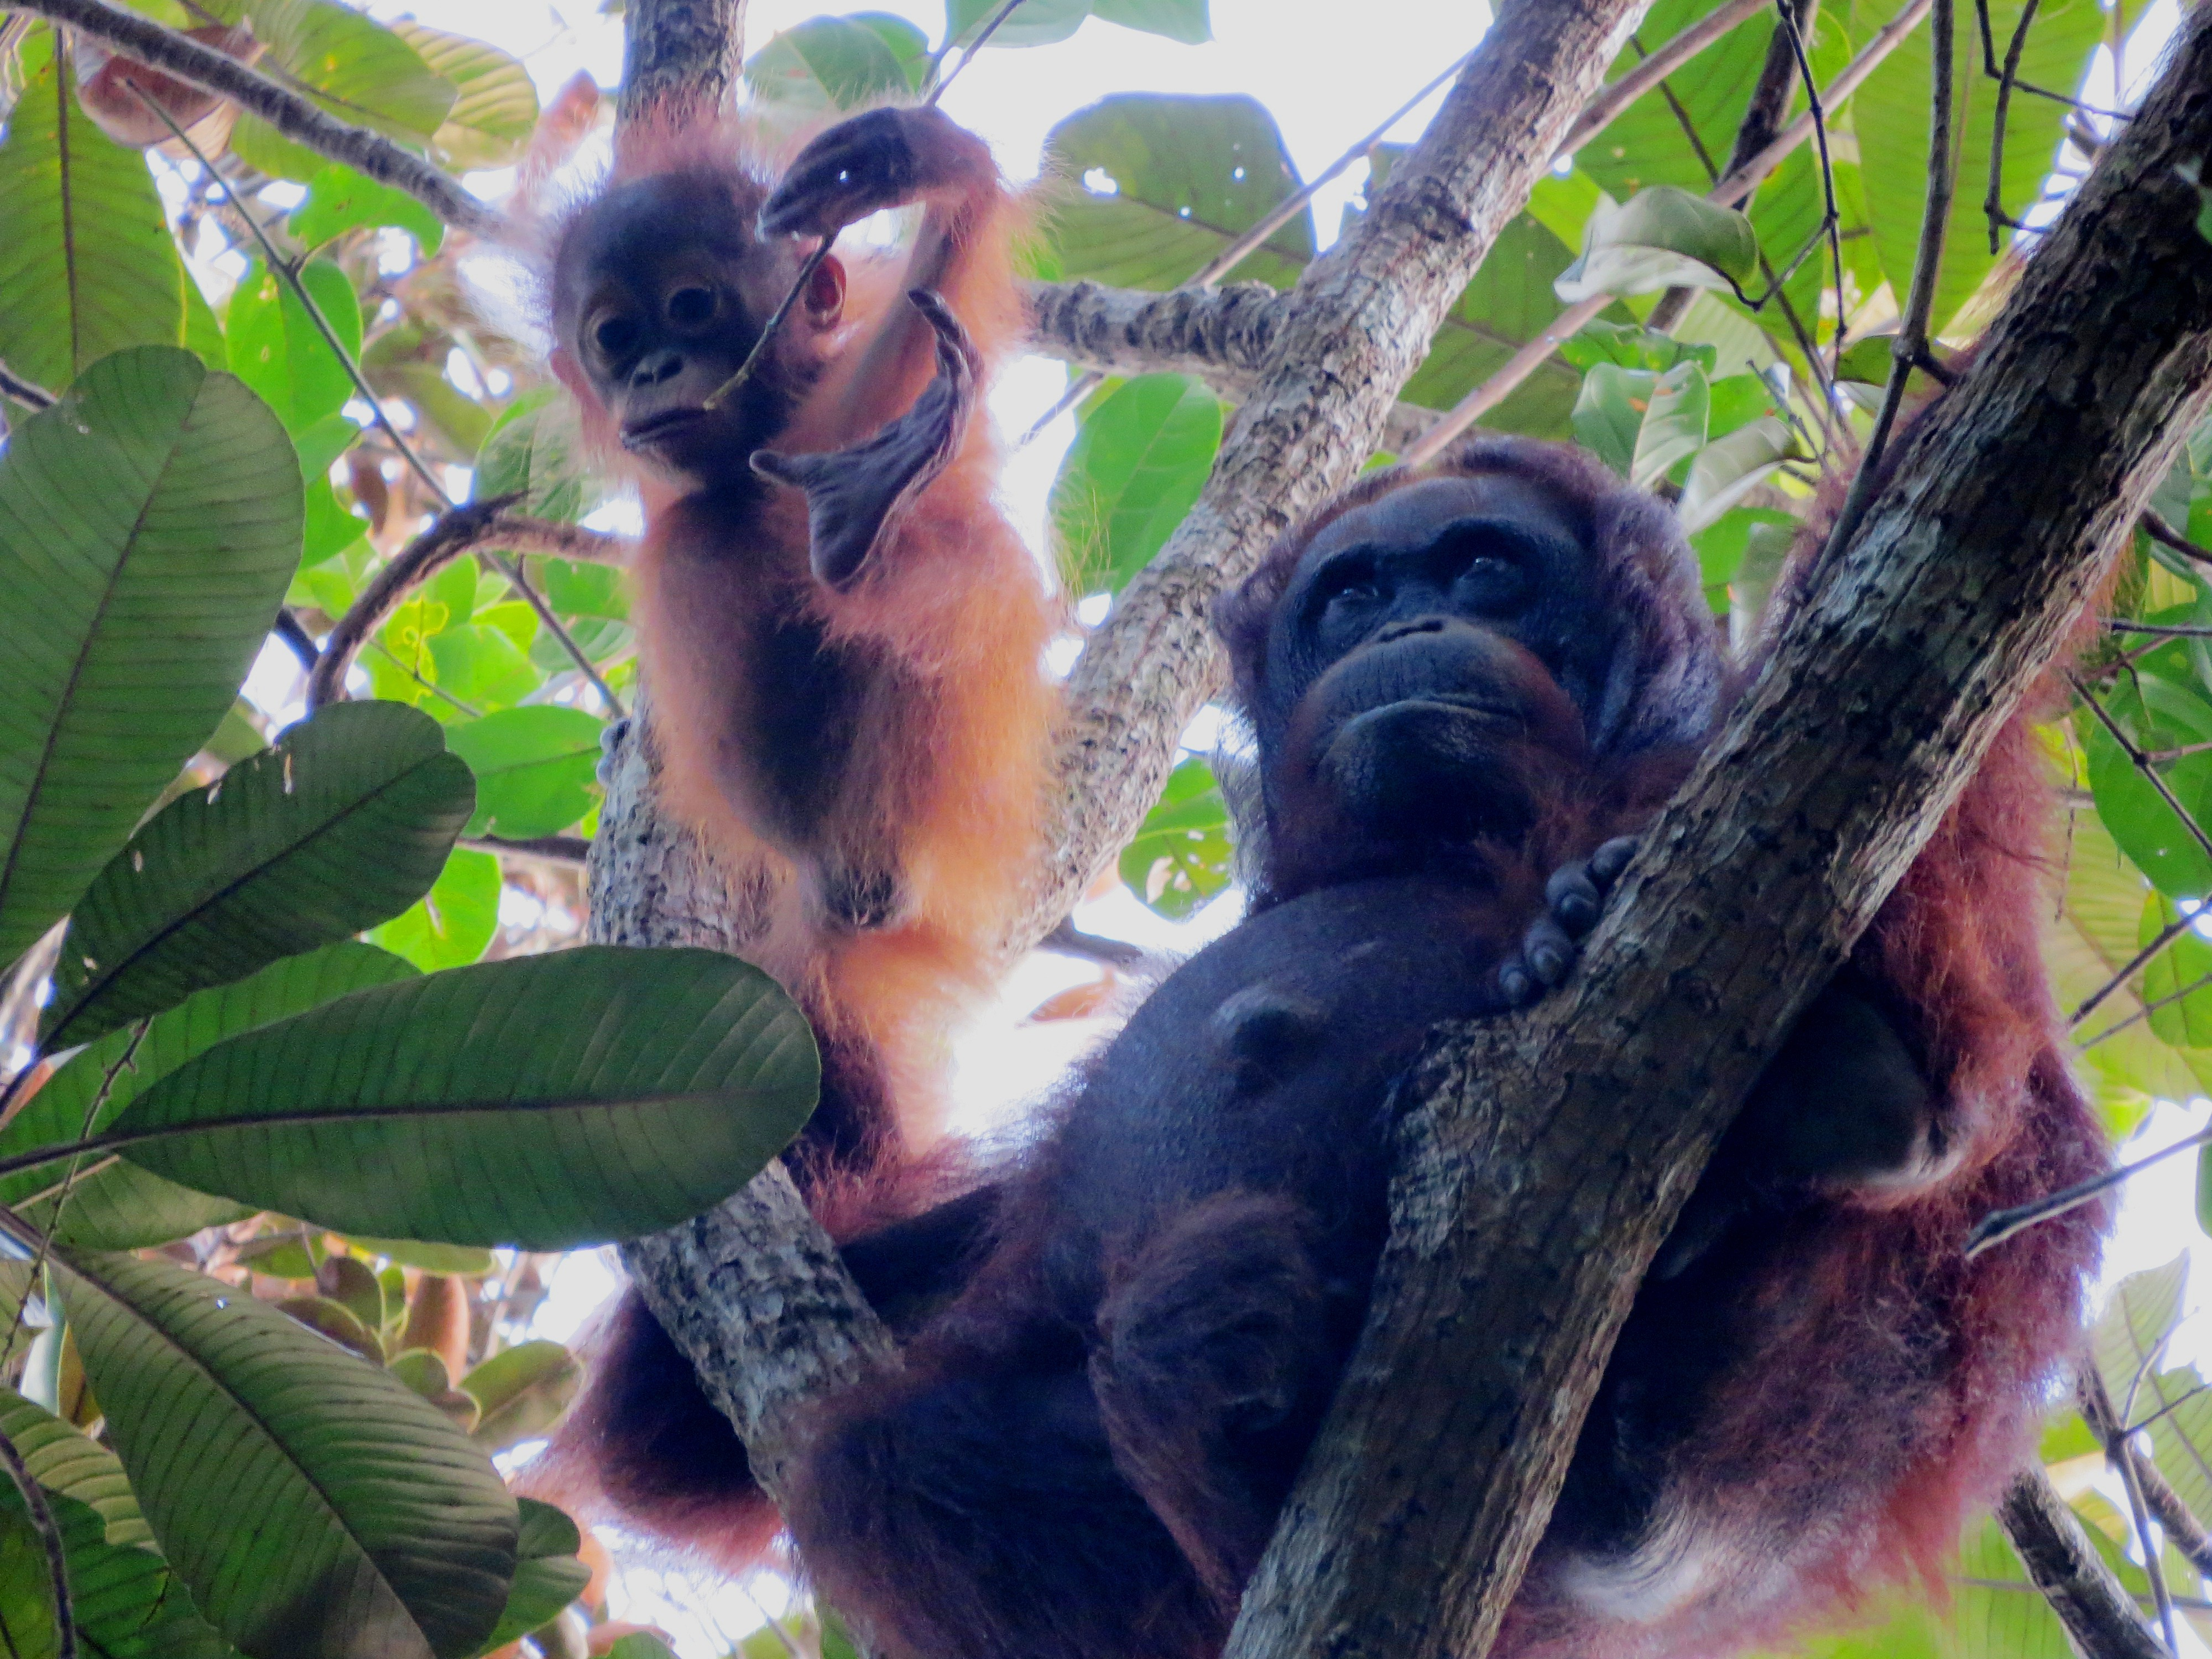 Wild orang-utan communication observed in detail for the first time